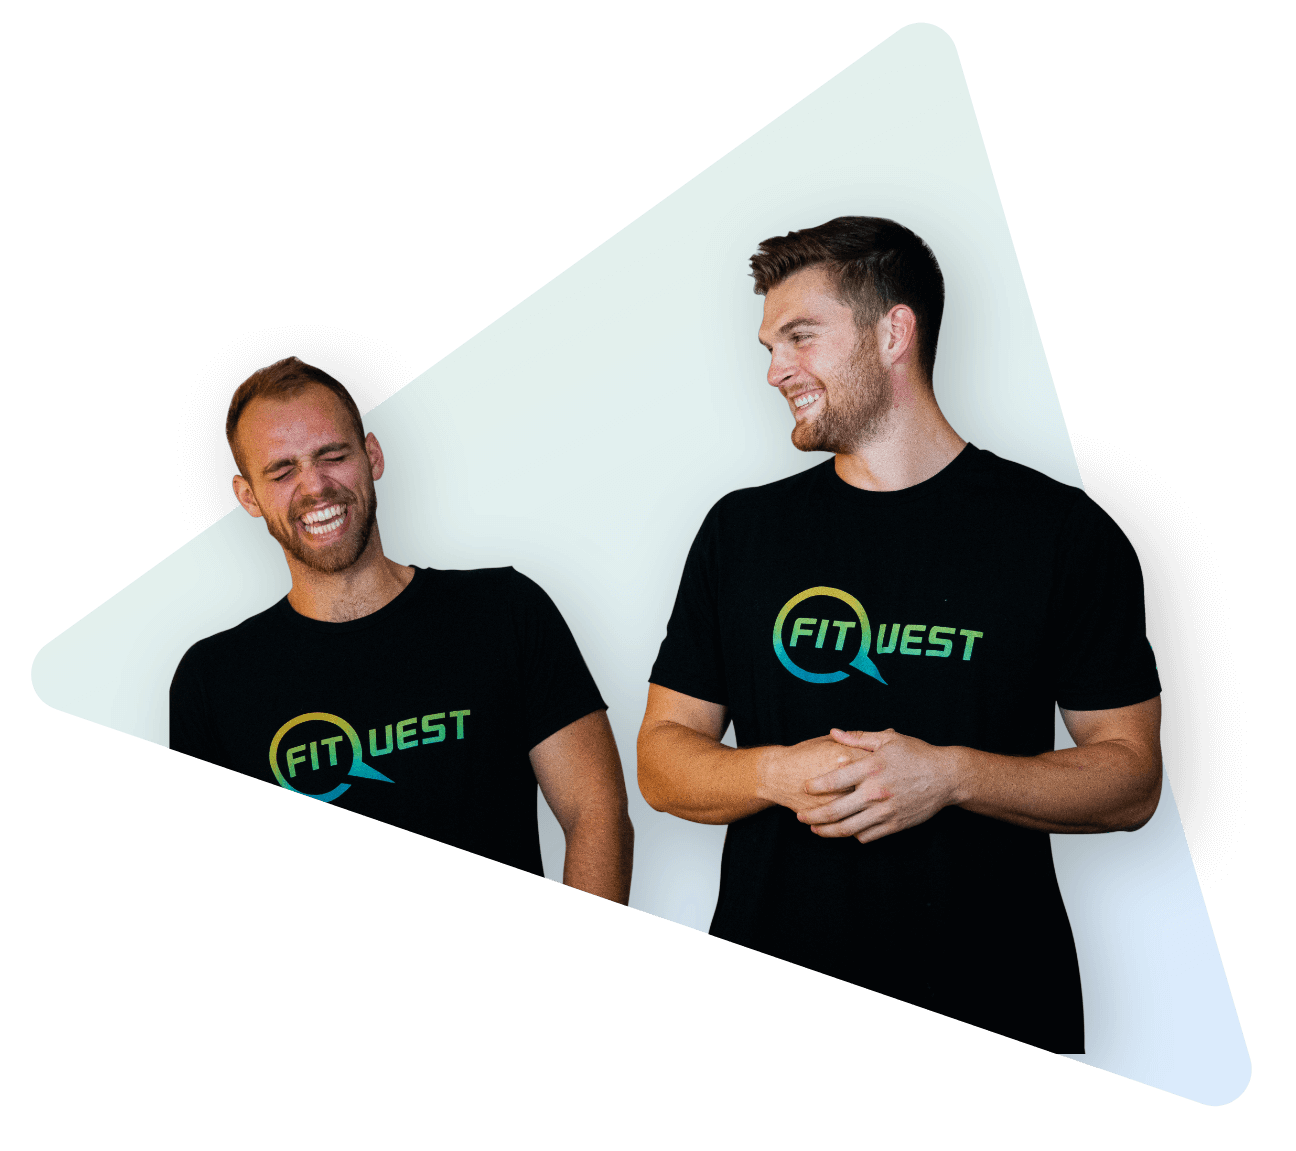 Braden Mosley and Ben Hermann FitQuest brand strategy laughing